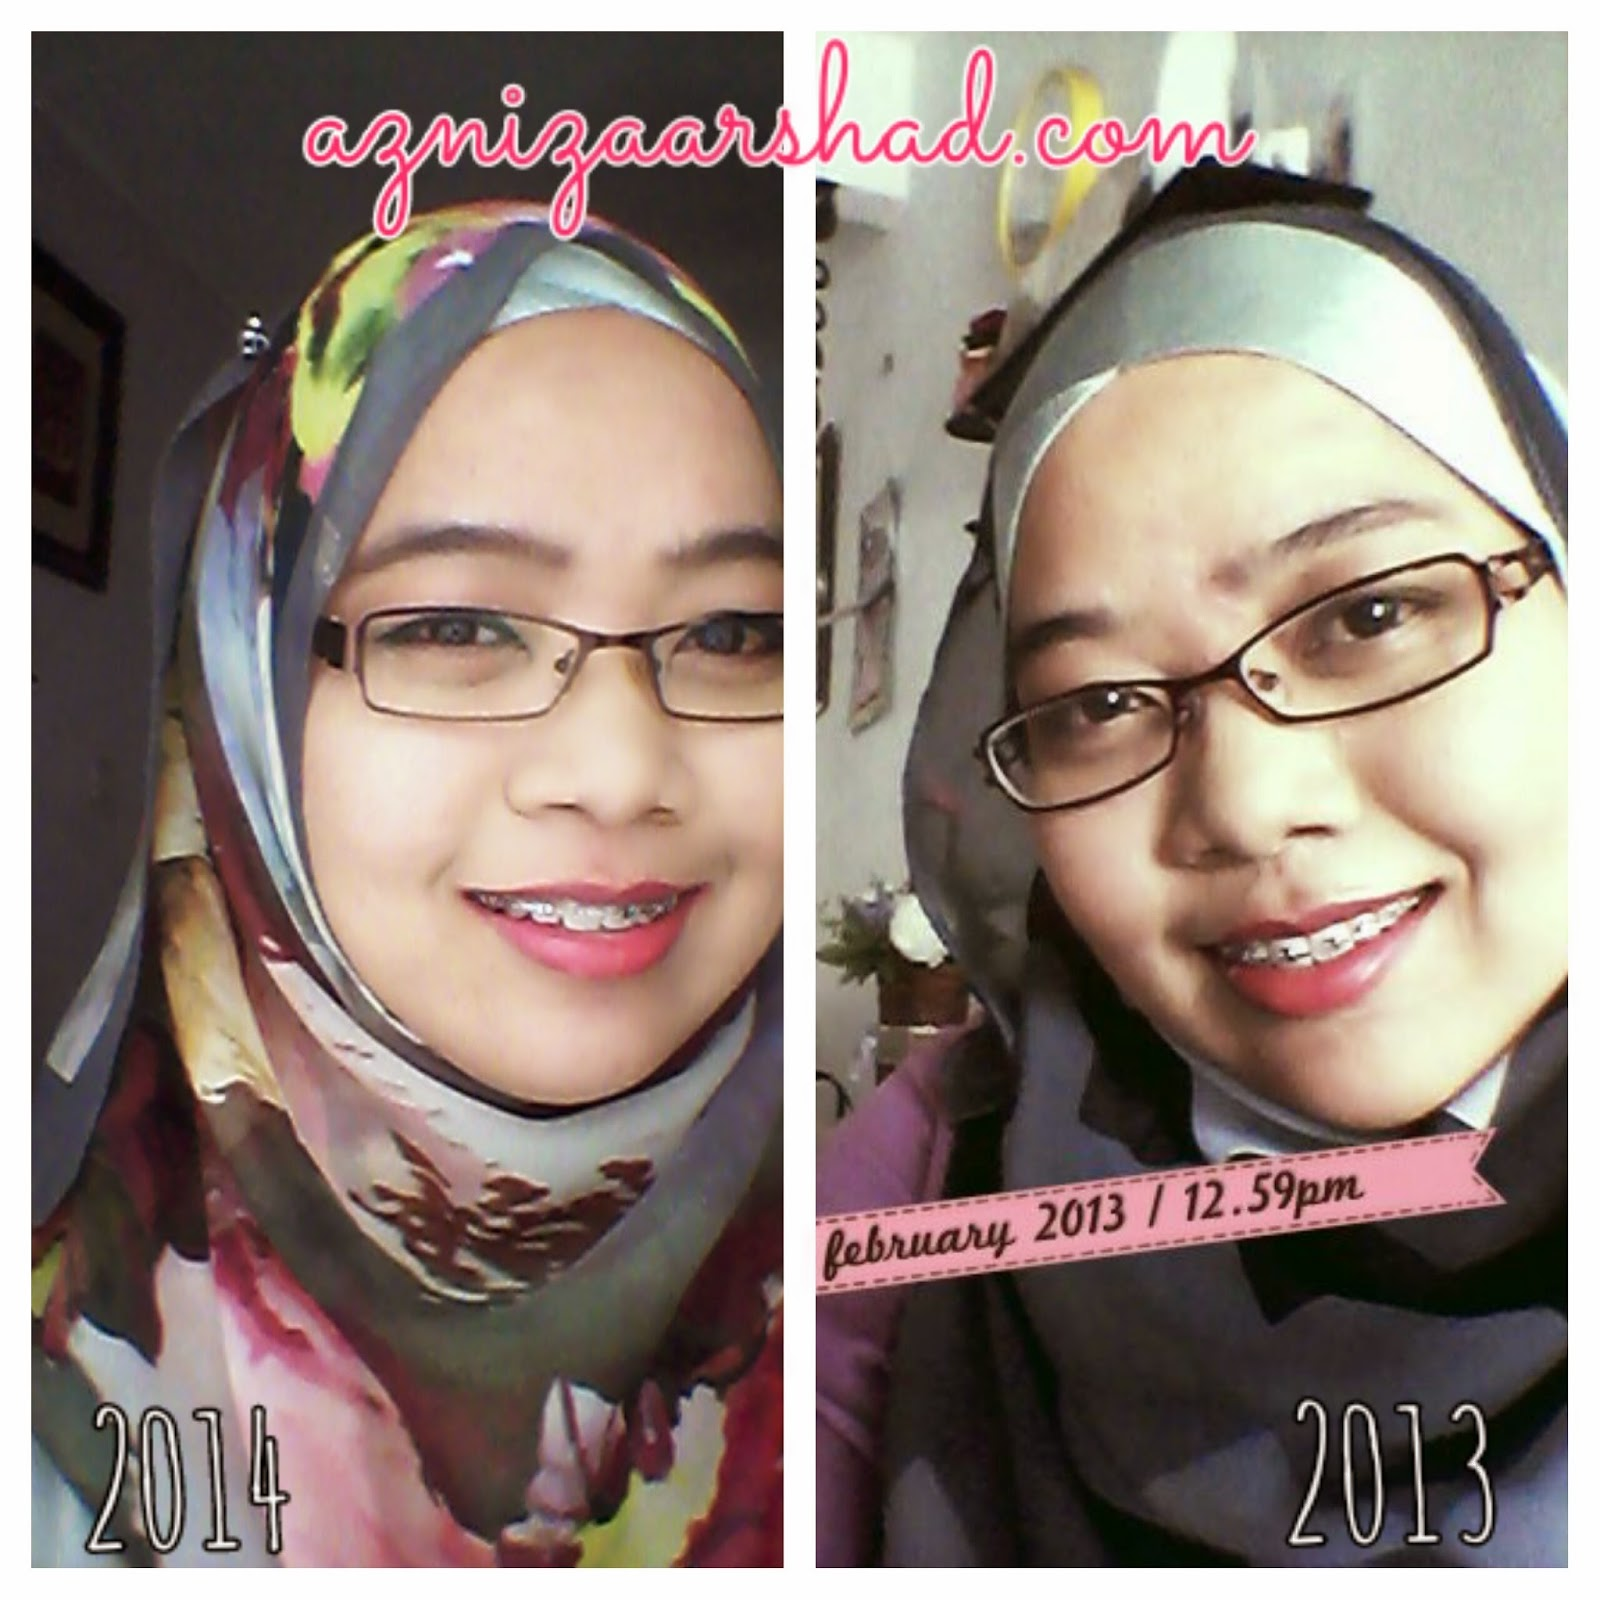 Azniza Arshad, Braces, Mompreneur, Kerja dari rumah, Bisnesmak, Glampreneur, Dynamic Leaders Group, AuthentiCircle, Jana Pendapatan, Extra Income